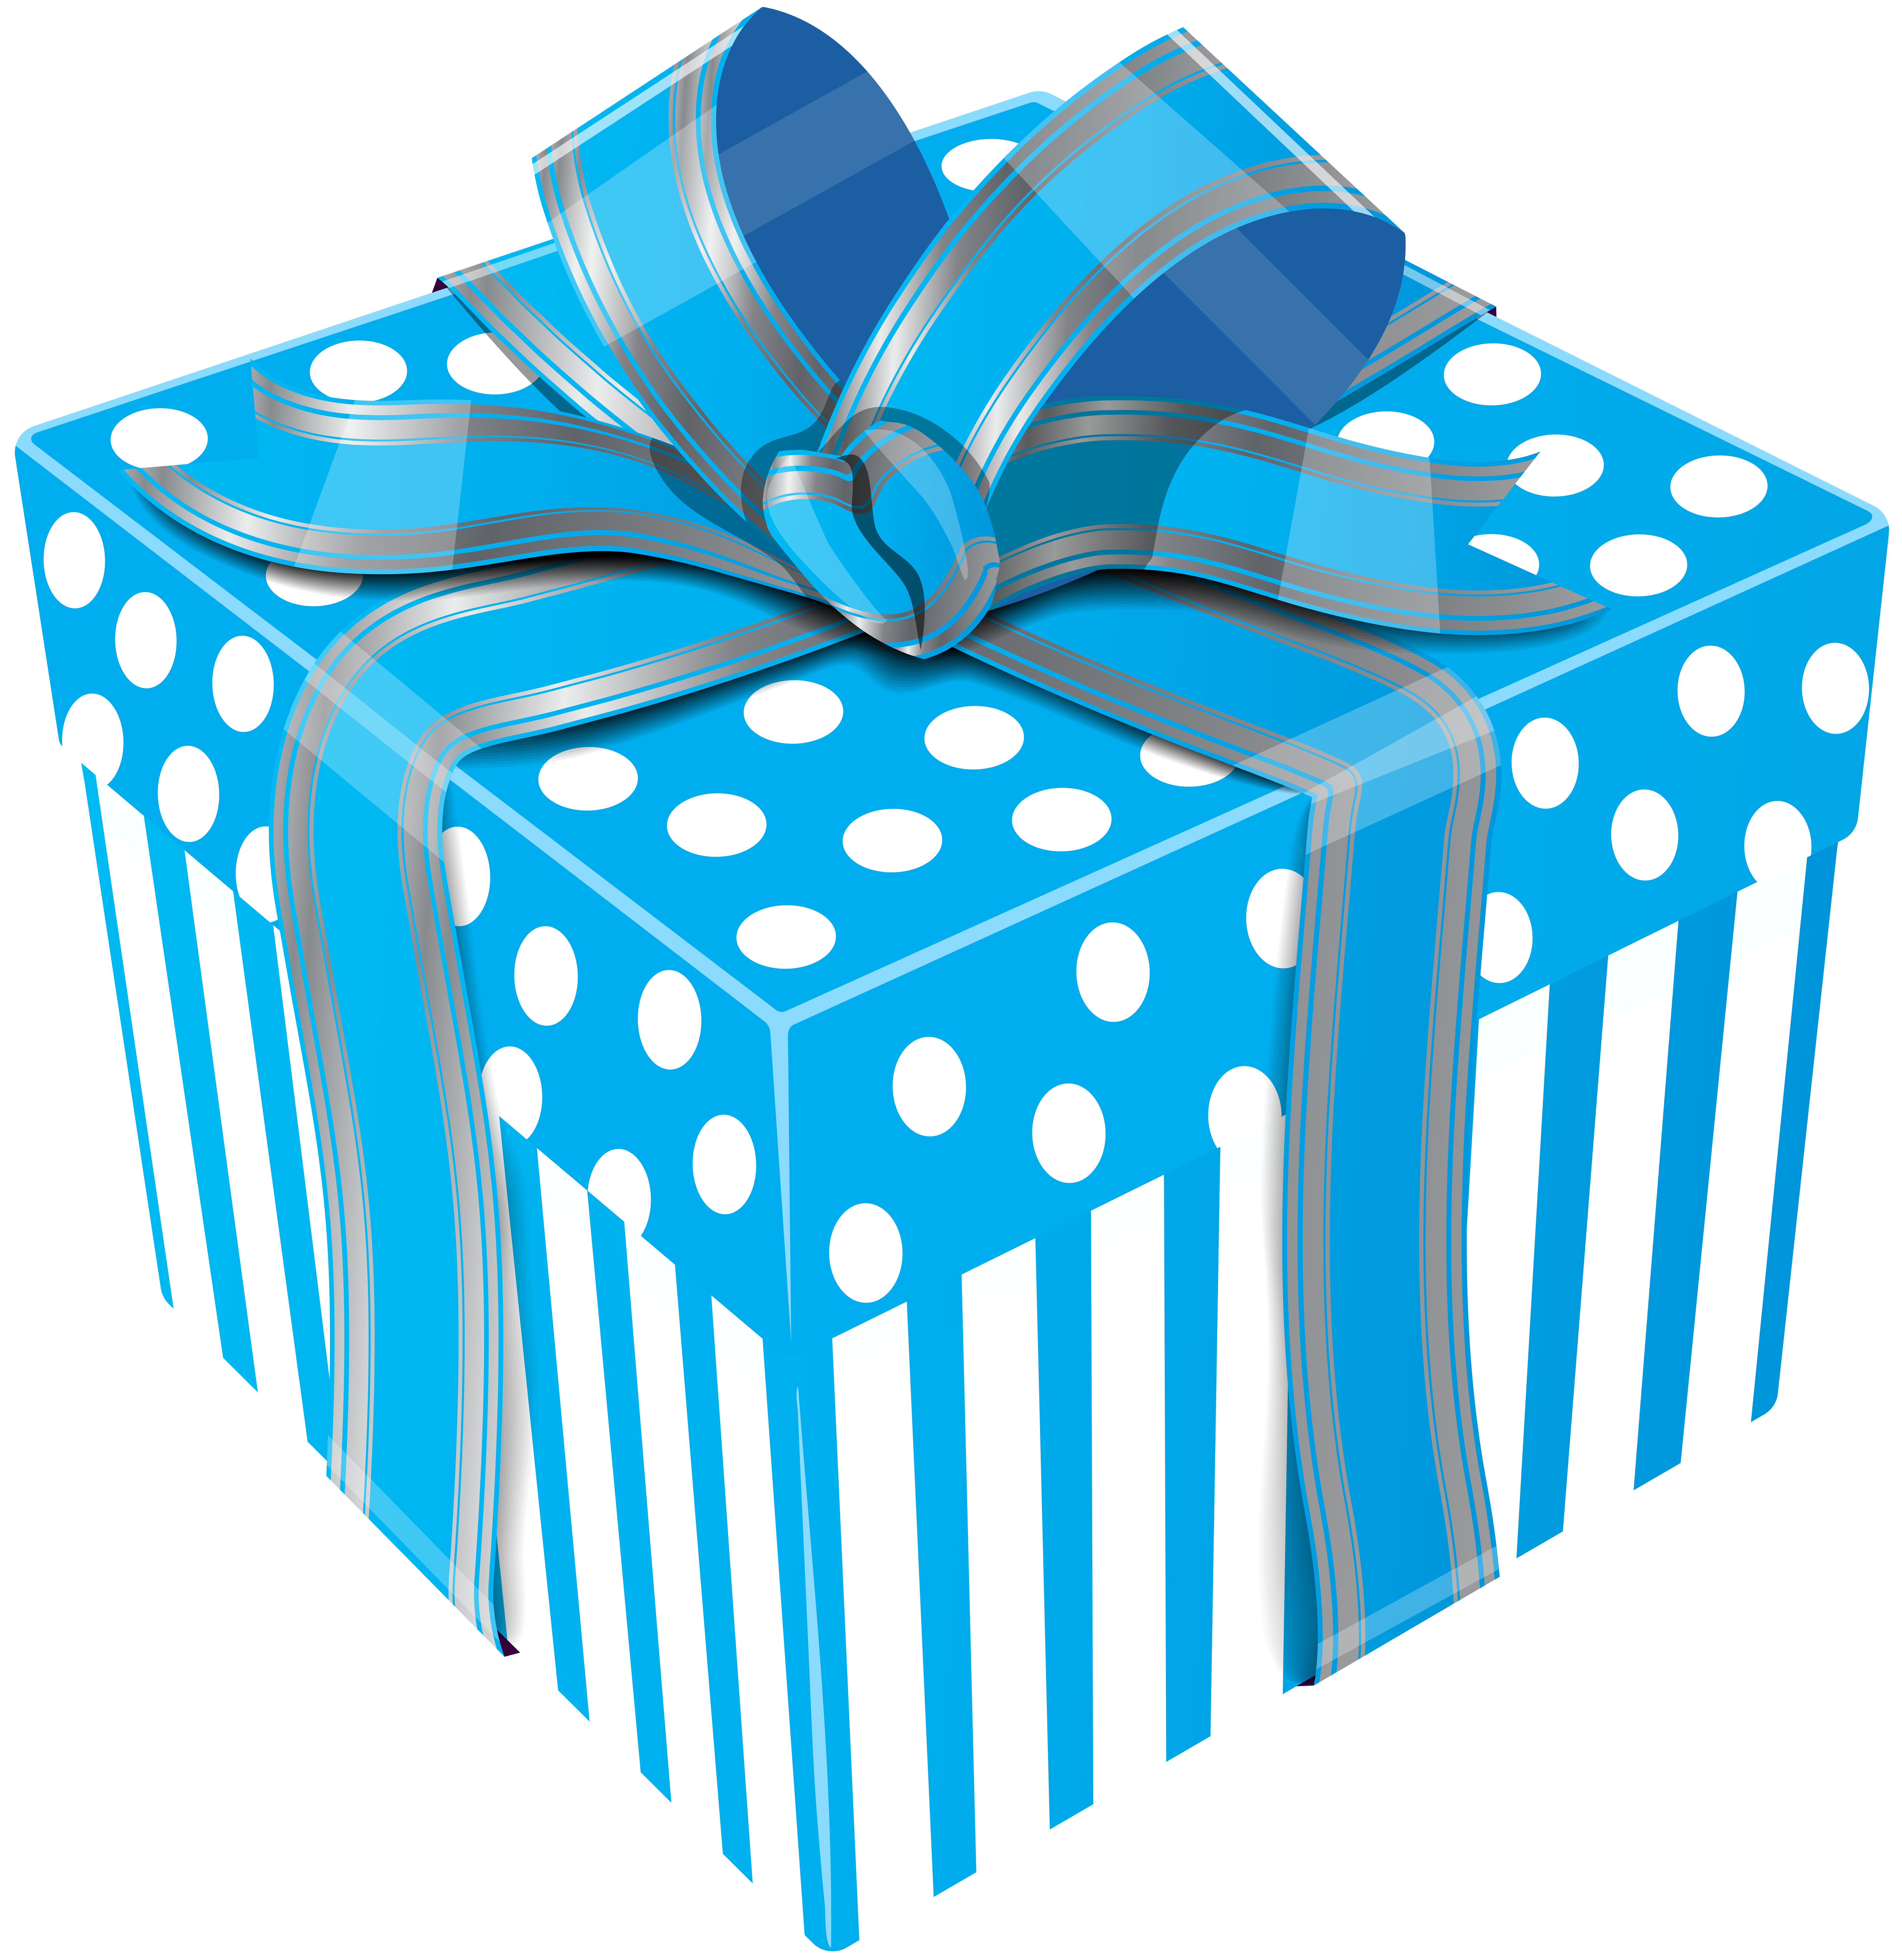 Cute Blue Gift Box Transparent PNG Clip Art Image.